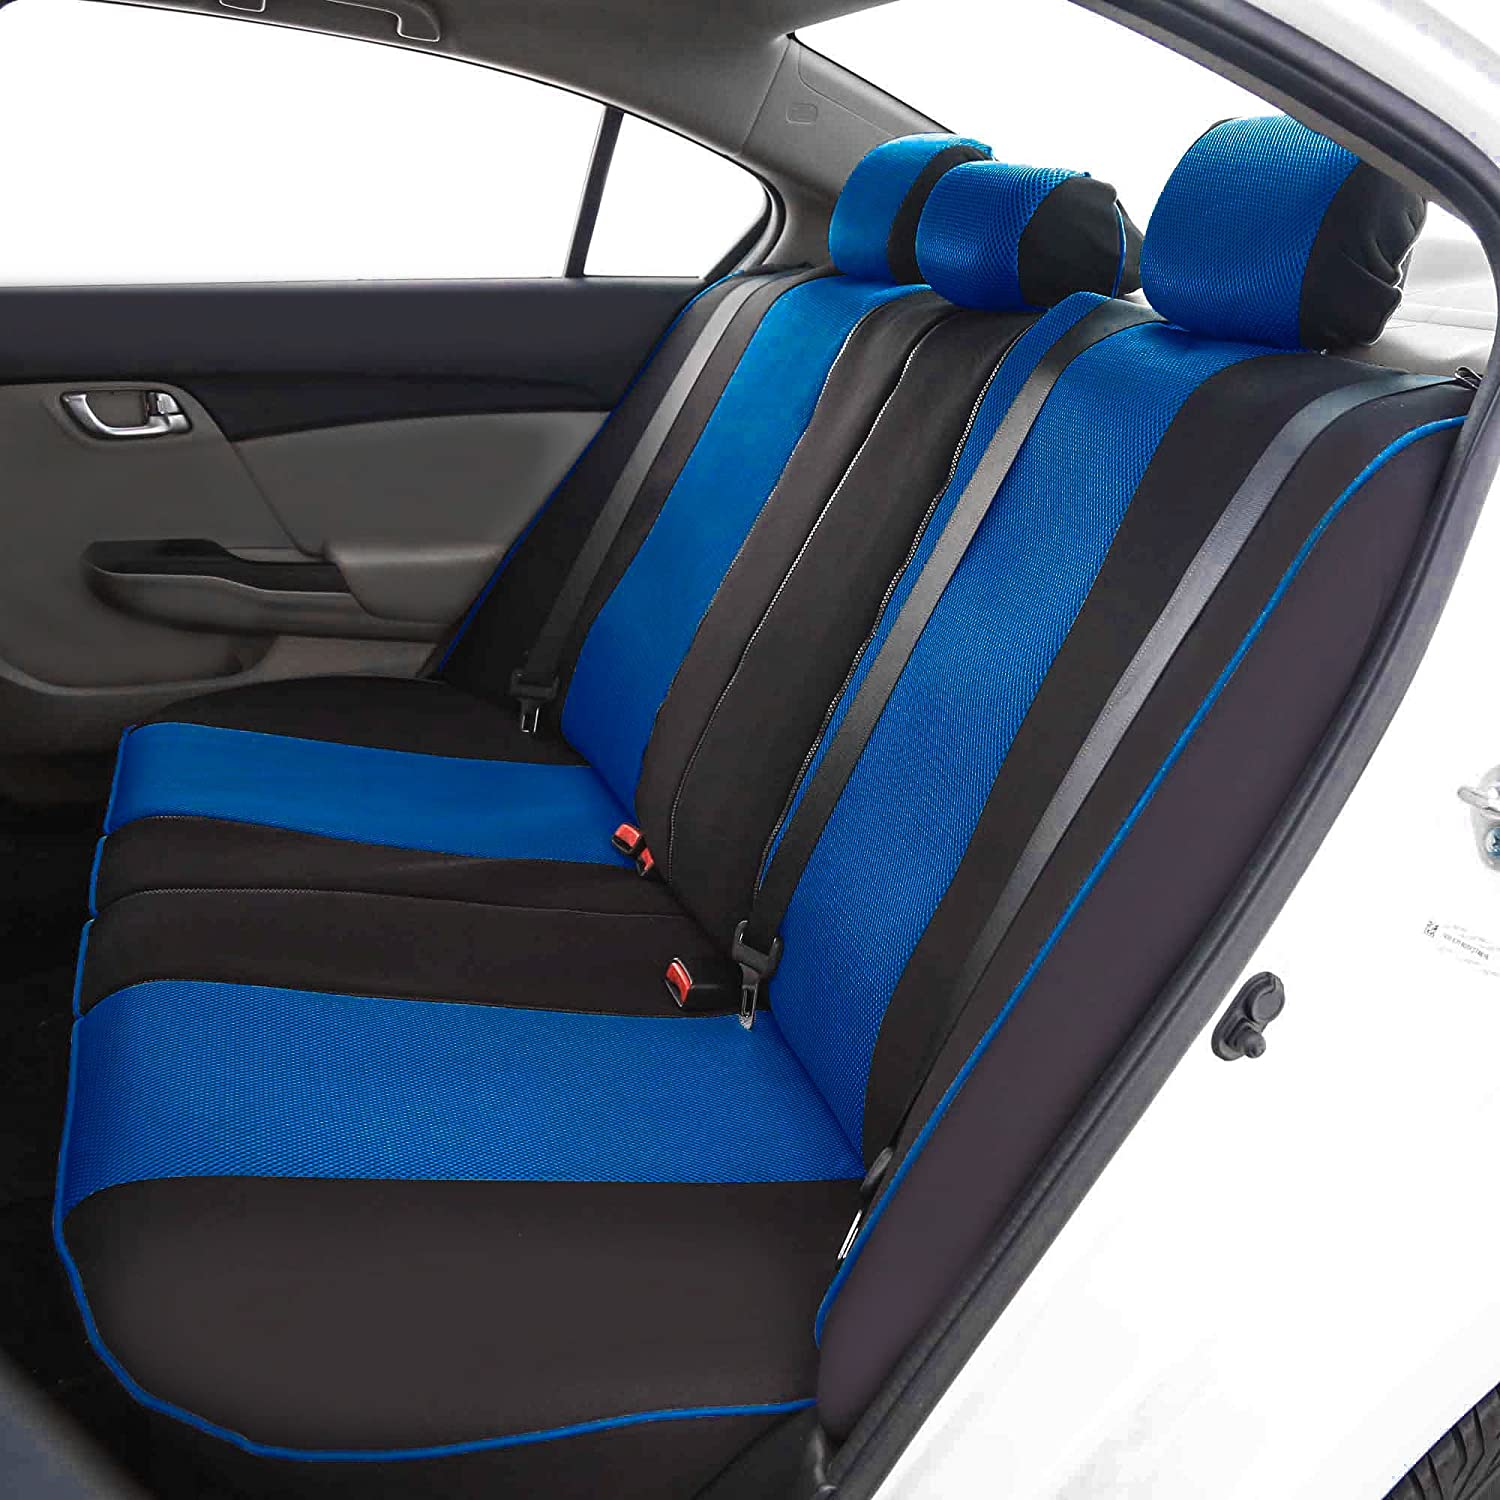 Fit Most Car Airbag Compatible and Split Bench FH Group FH-FB063115 Full Set Sports Fabric Car Seat Covers Solid Black SUV or Van Truck